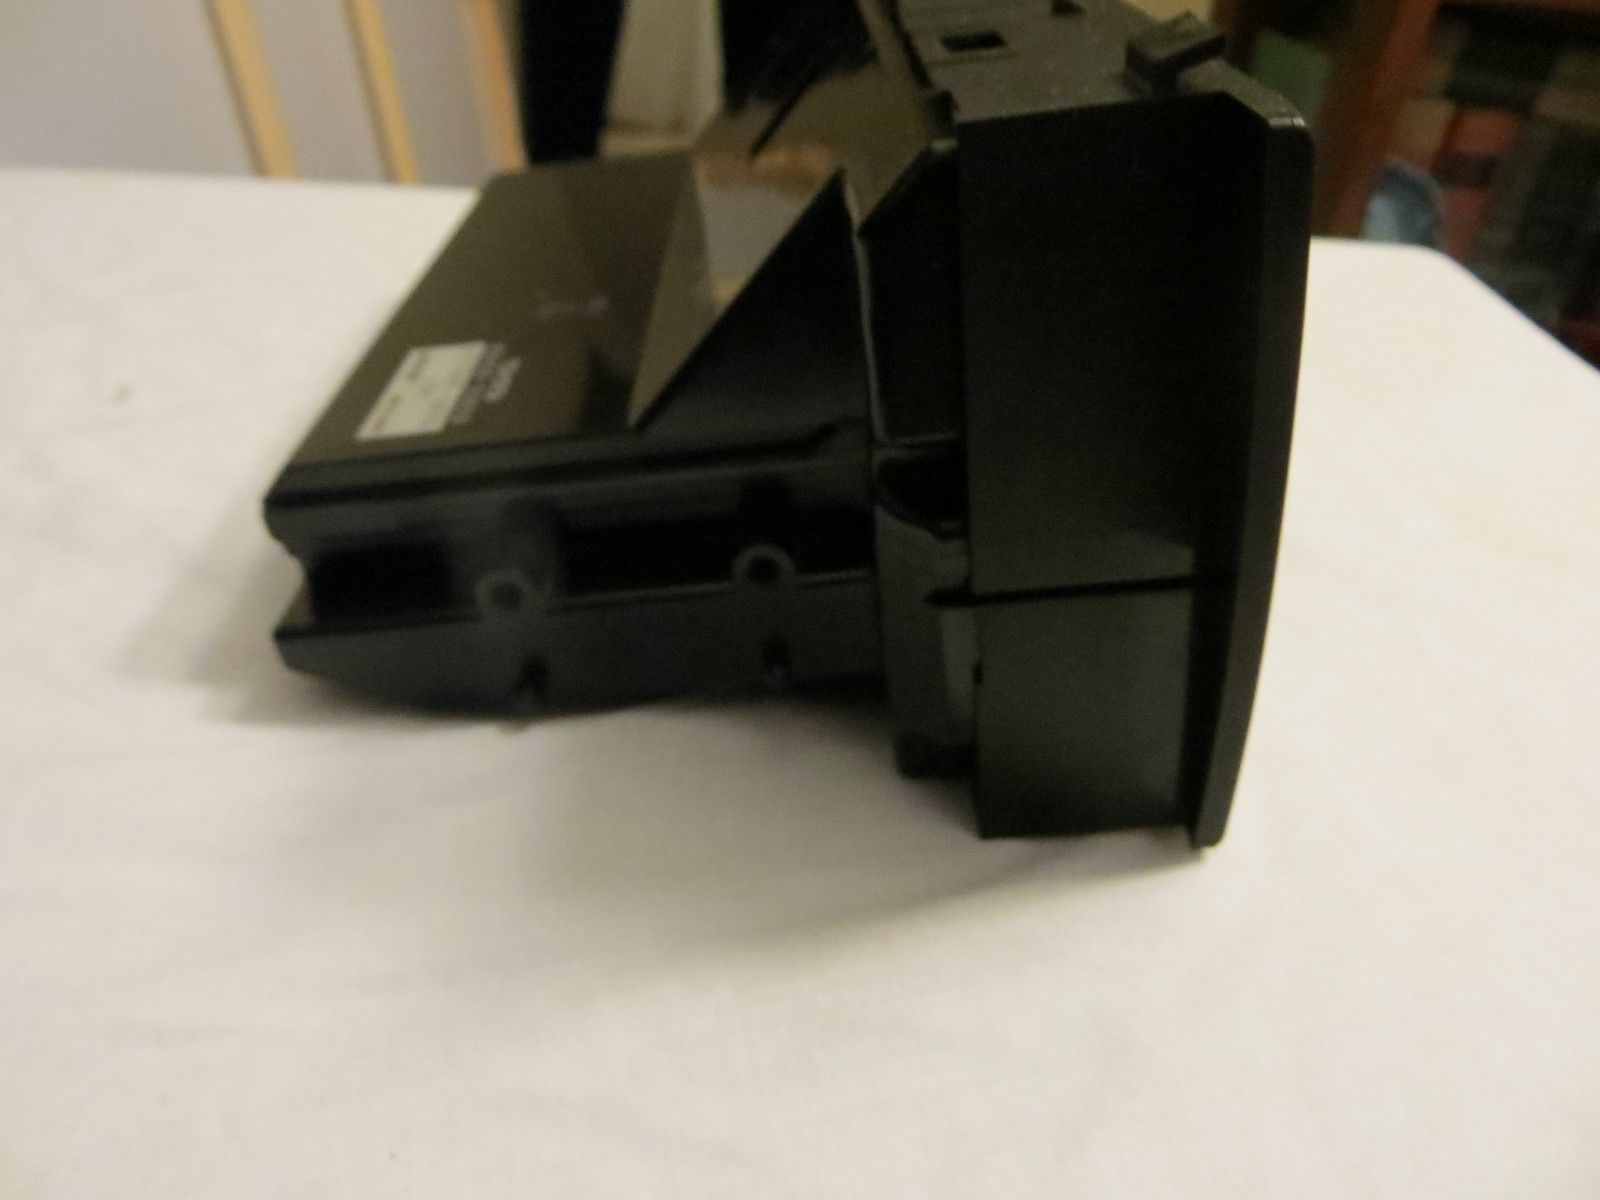 2001 Lexus IS300 HVAC Auto Heater AC Fan Control Switch Unit 55902-53080